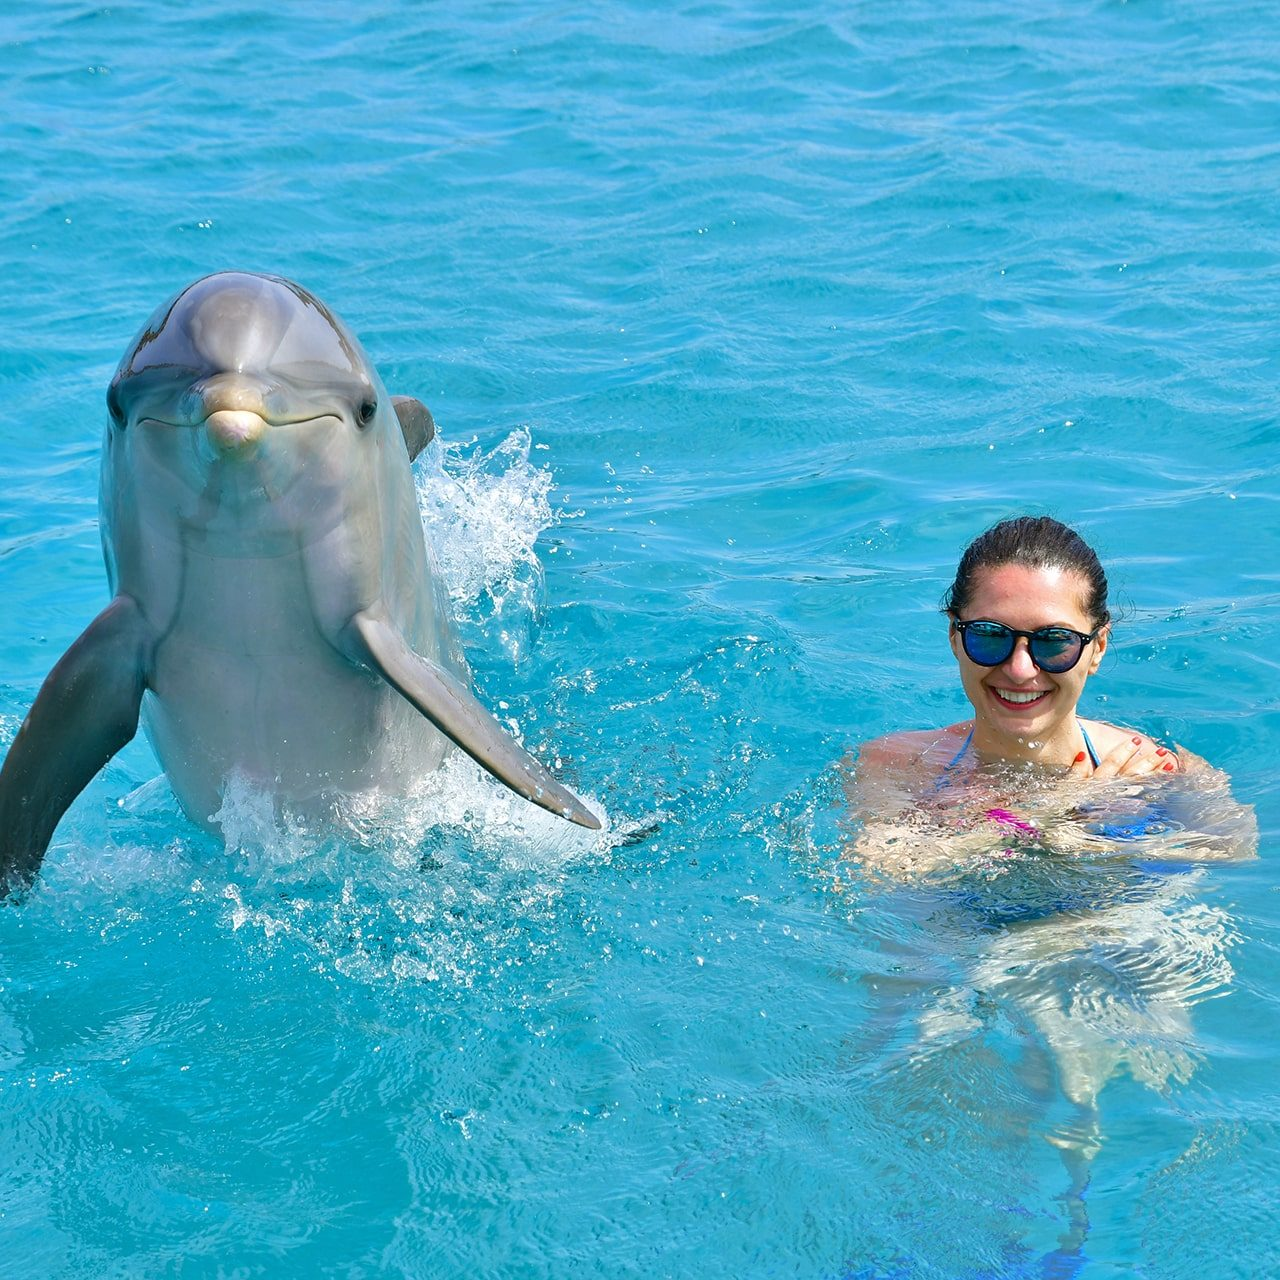 Female tourist and dolphin in the sea, smiling at the camera at the Dolphin Academy Curaçao.